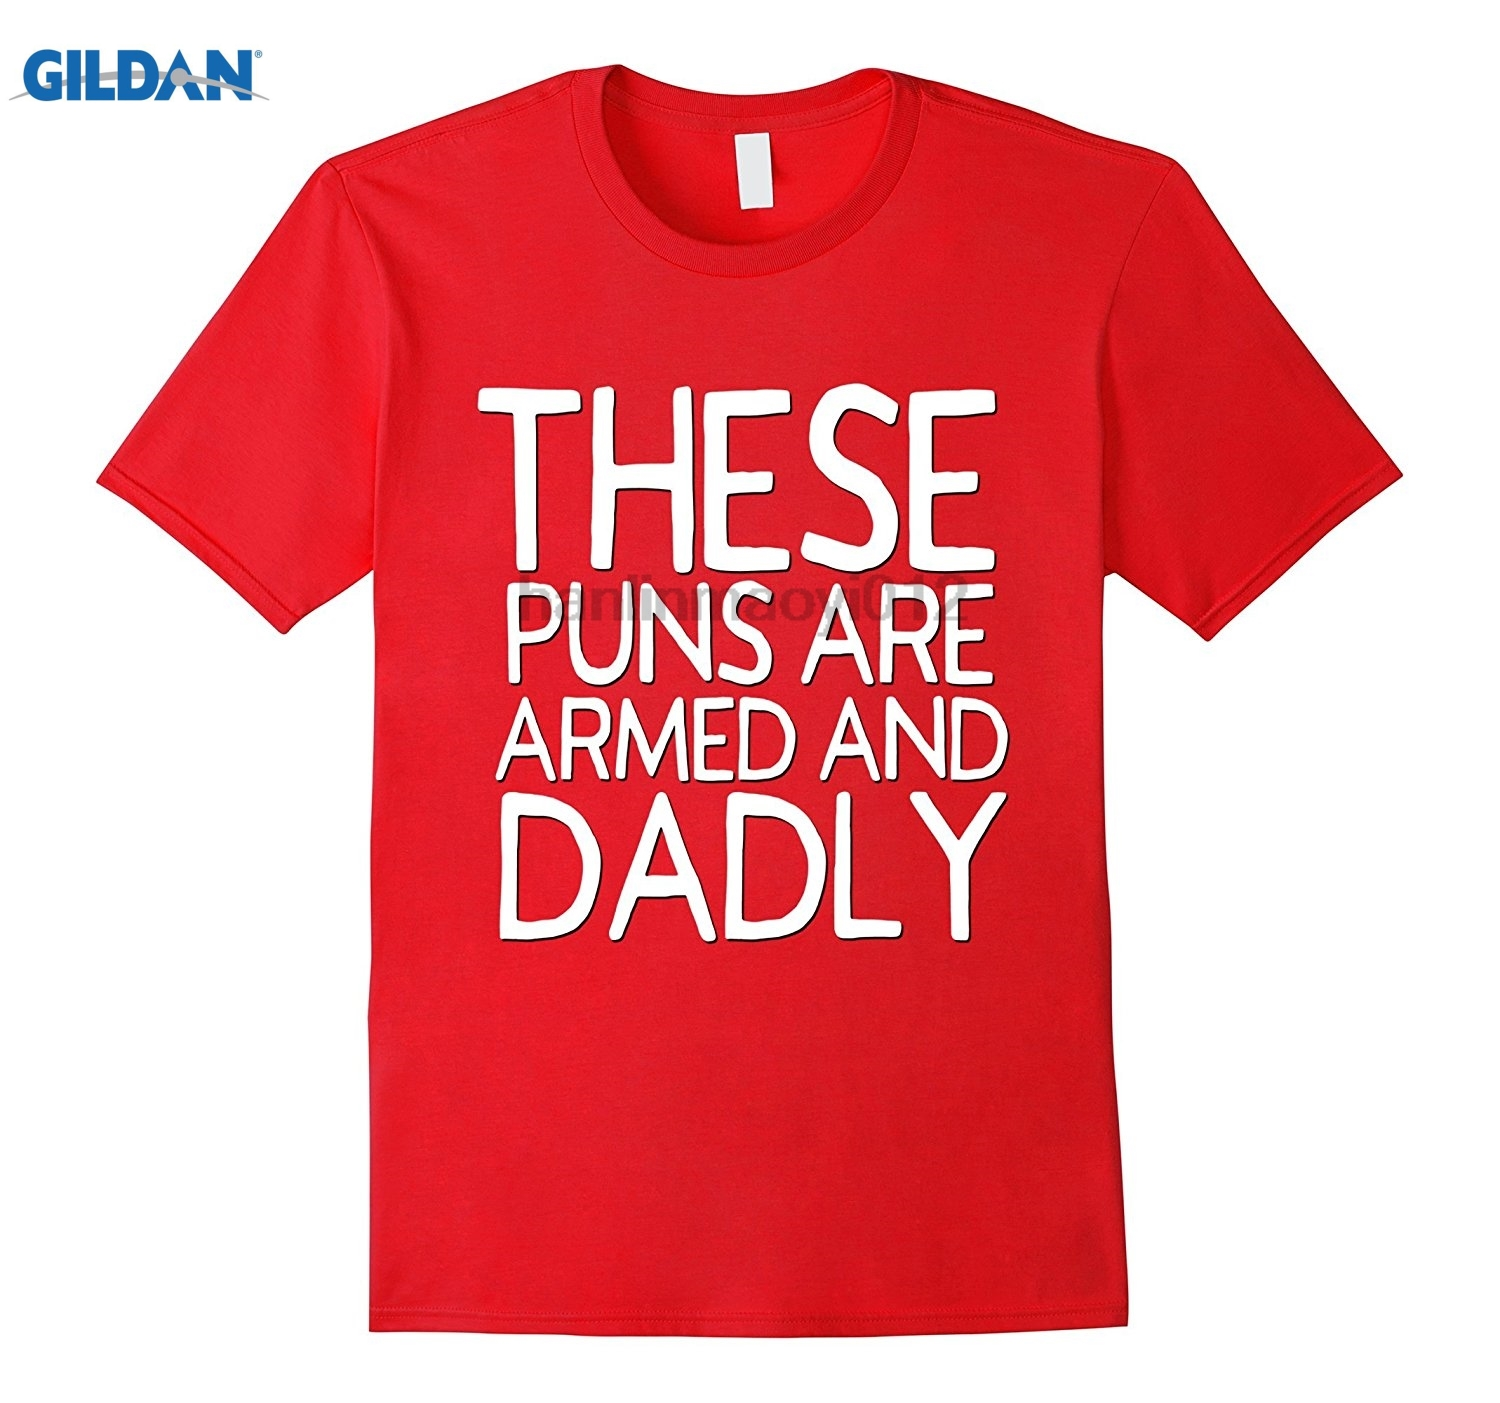 GILDAN Funny Dad Jokes Shirt These Puns Are Armed Dadly Fathers Day Trend new trend Mothers Day Ms. T-shirt